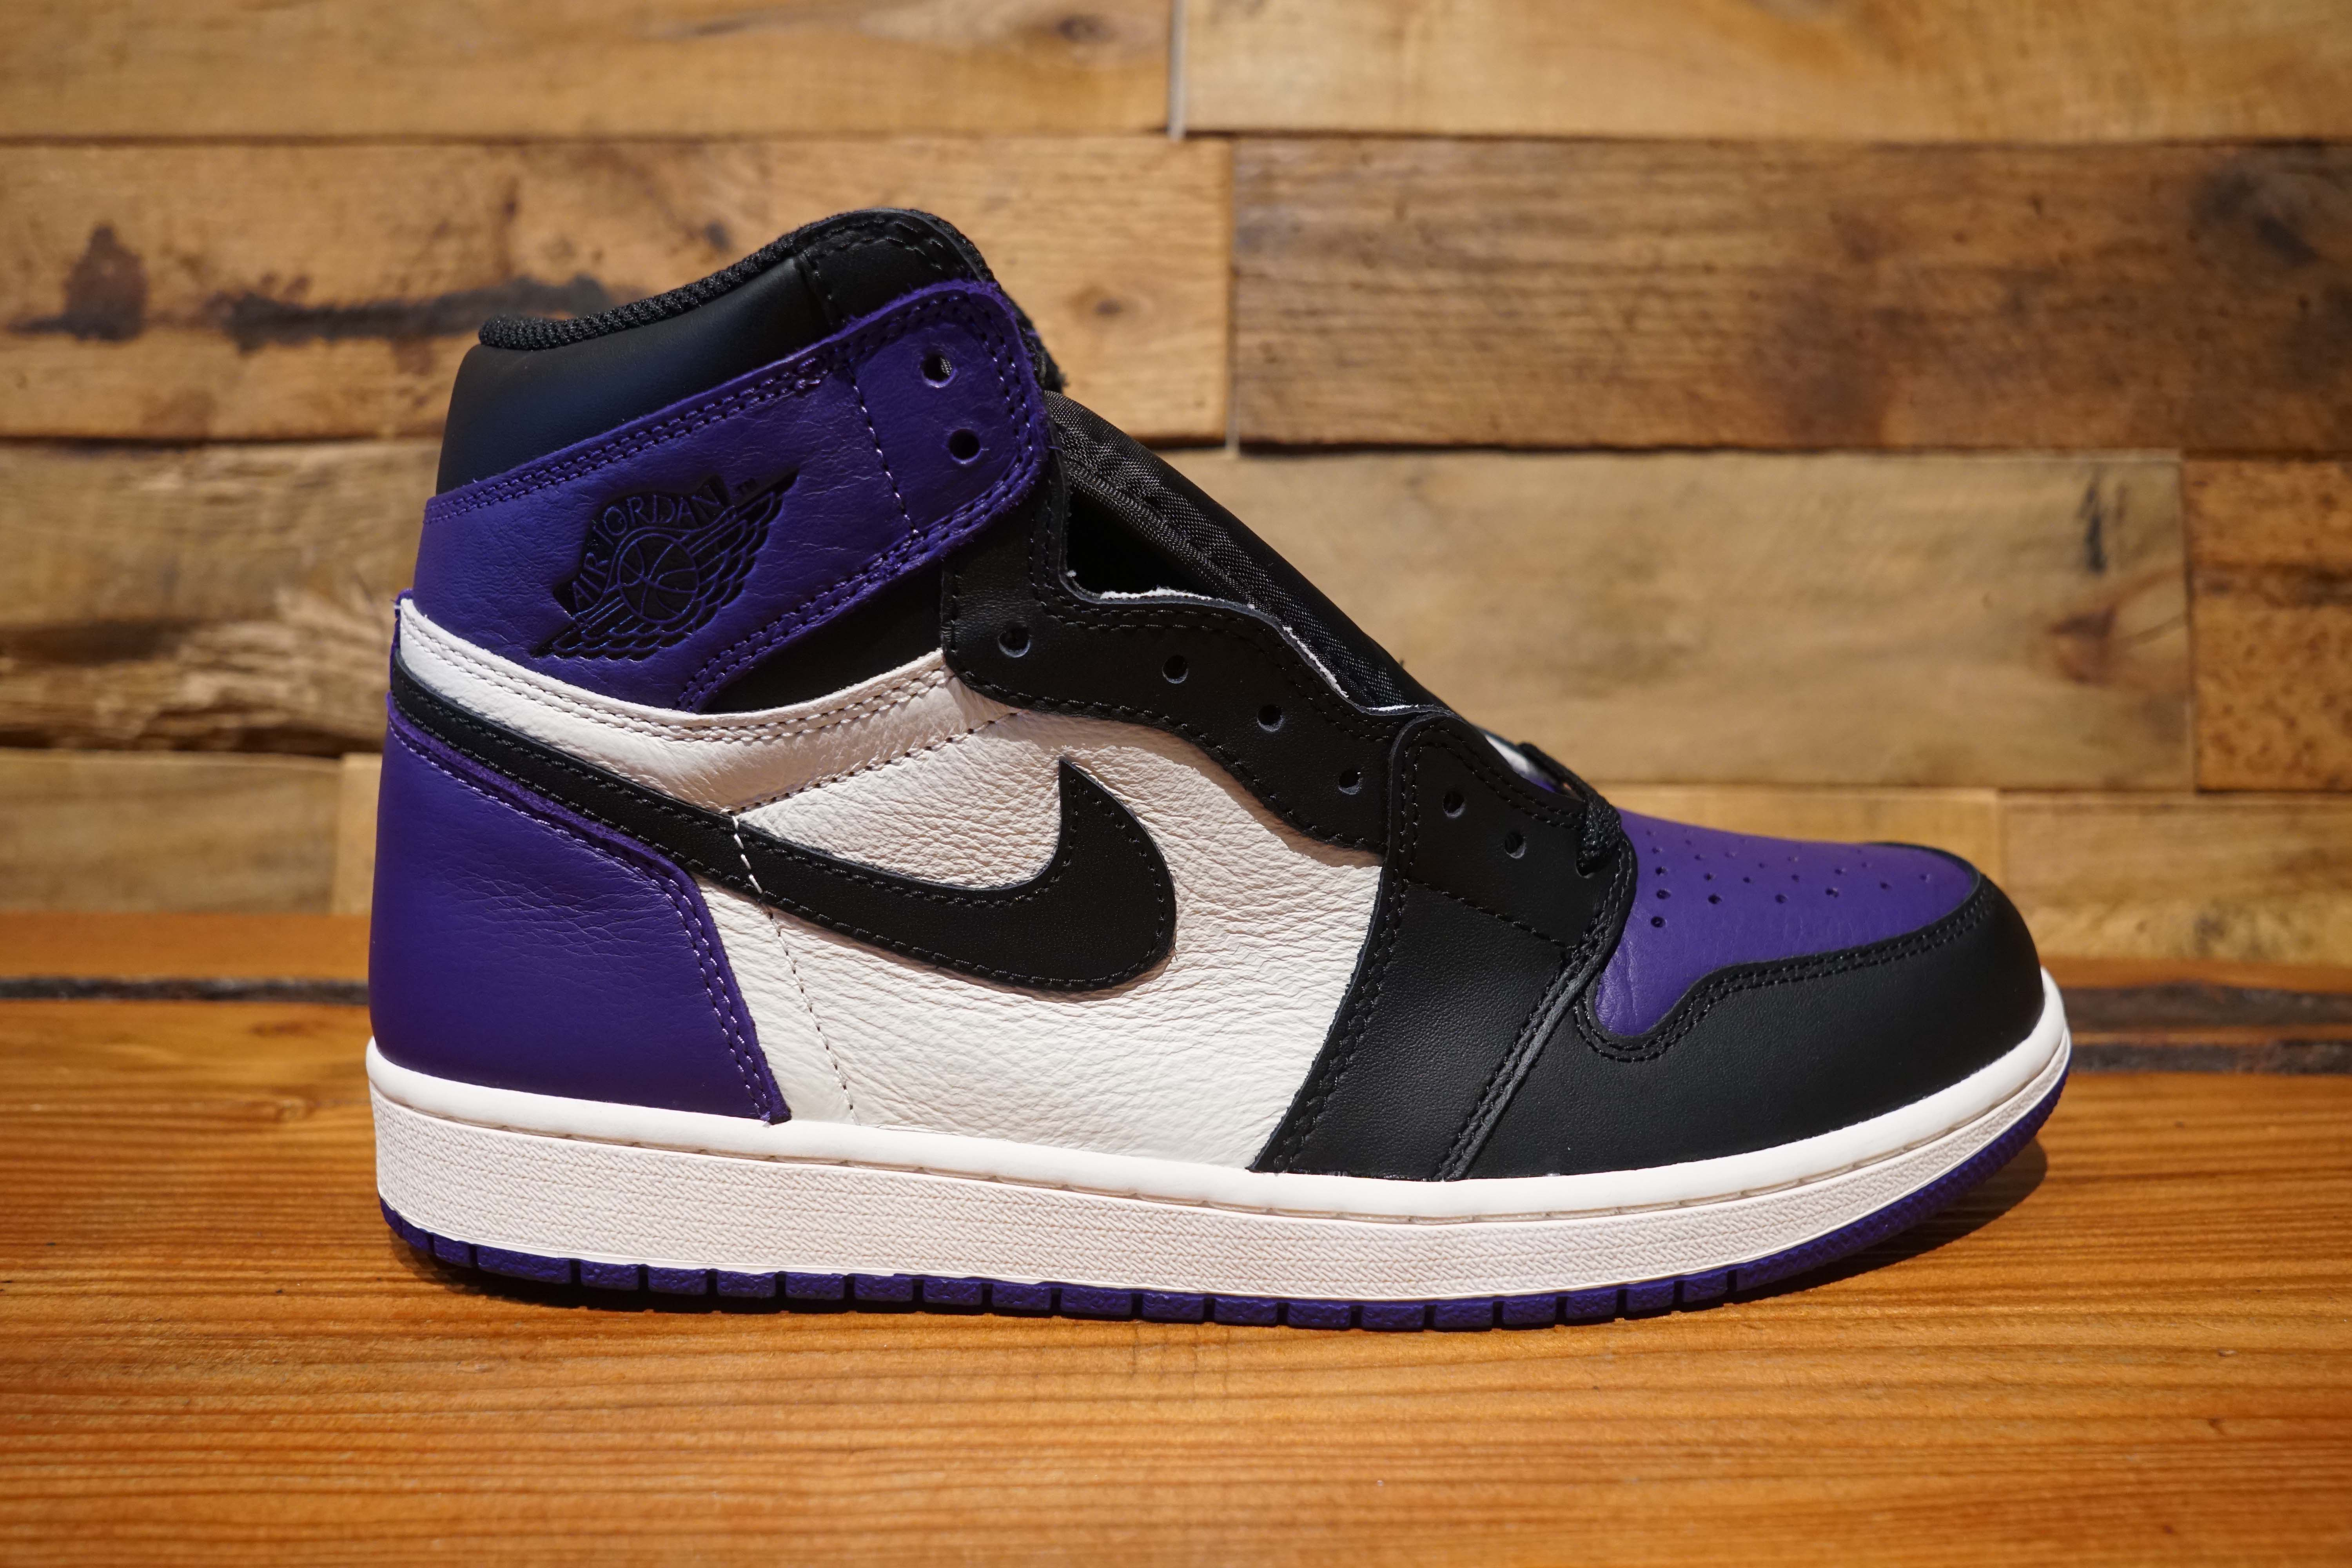 4f5a0cae003d09 ... discount code for air jordan 1 retro high og court purple b21af 8aa91